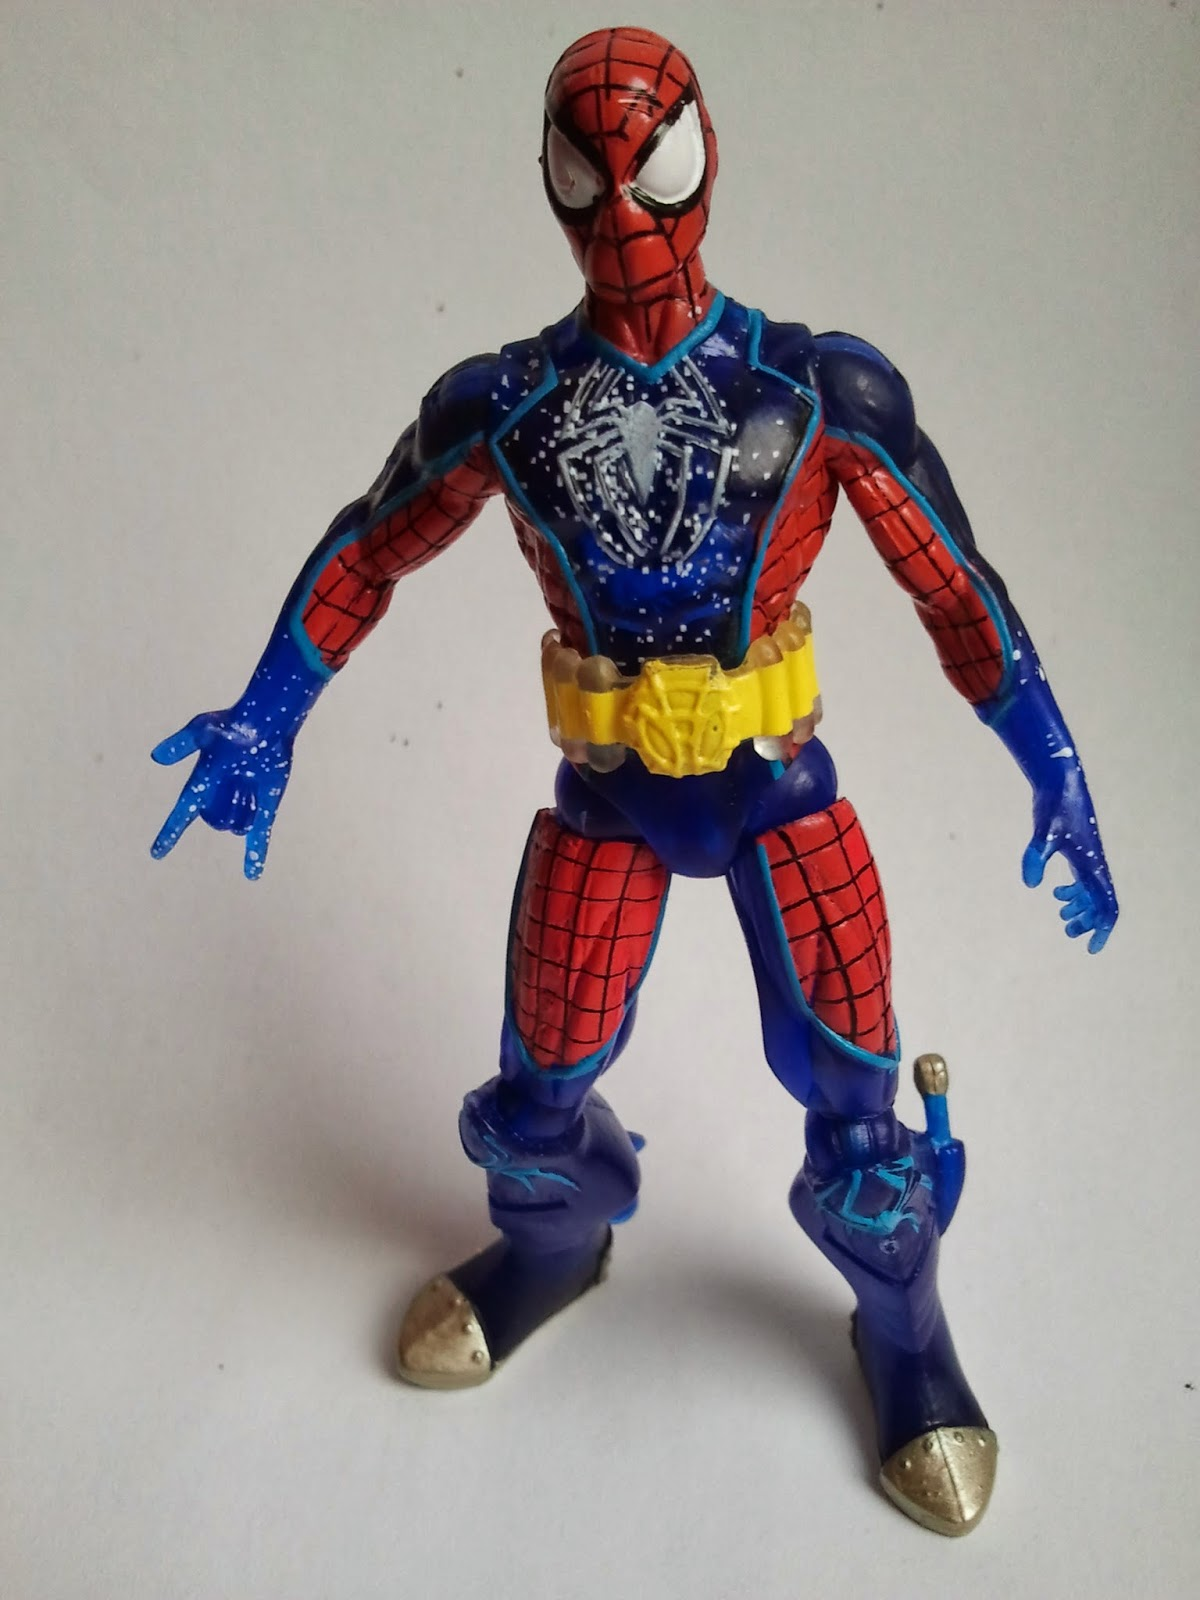 Toywalkers Blog Space Crusader Cosmic Crusade Spider Man Hasbro Spiderman Christmas Is Near So This Probably My Last Update Before All Hell Breaks Loose While Id Been On The Quest Of Finding Presents